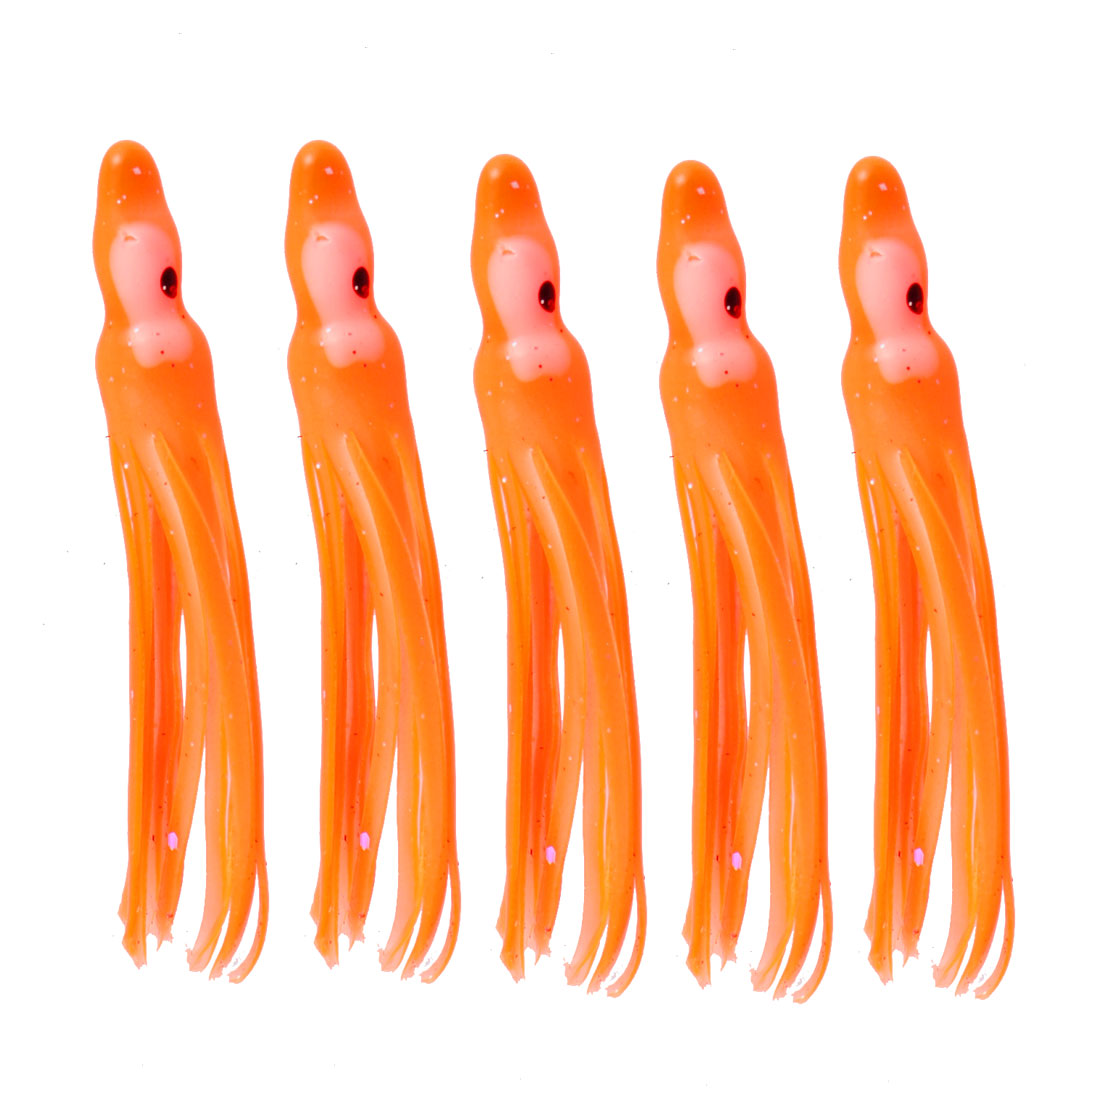 Fishing Orange Red Soft Plastic Squid Skirt Lure Bait 5 Pcs